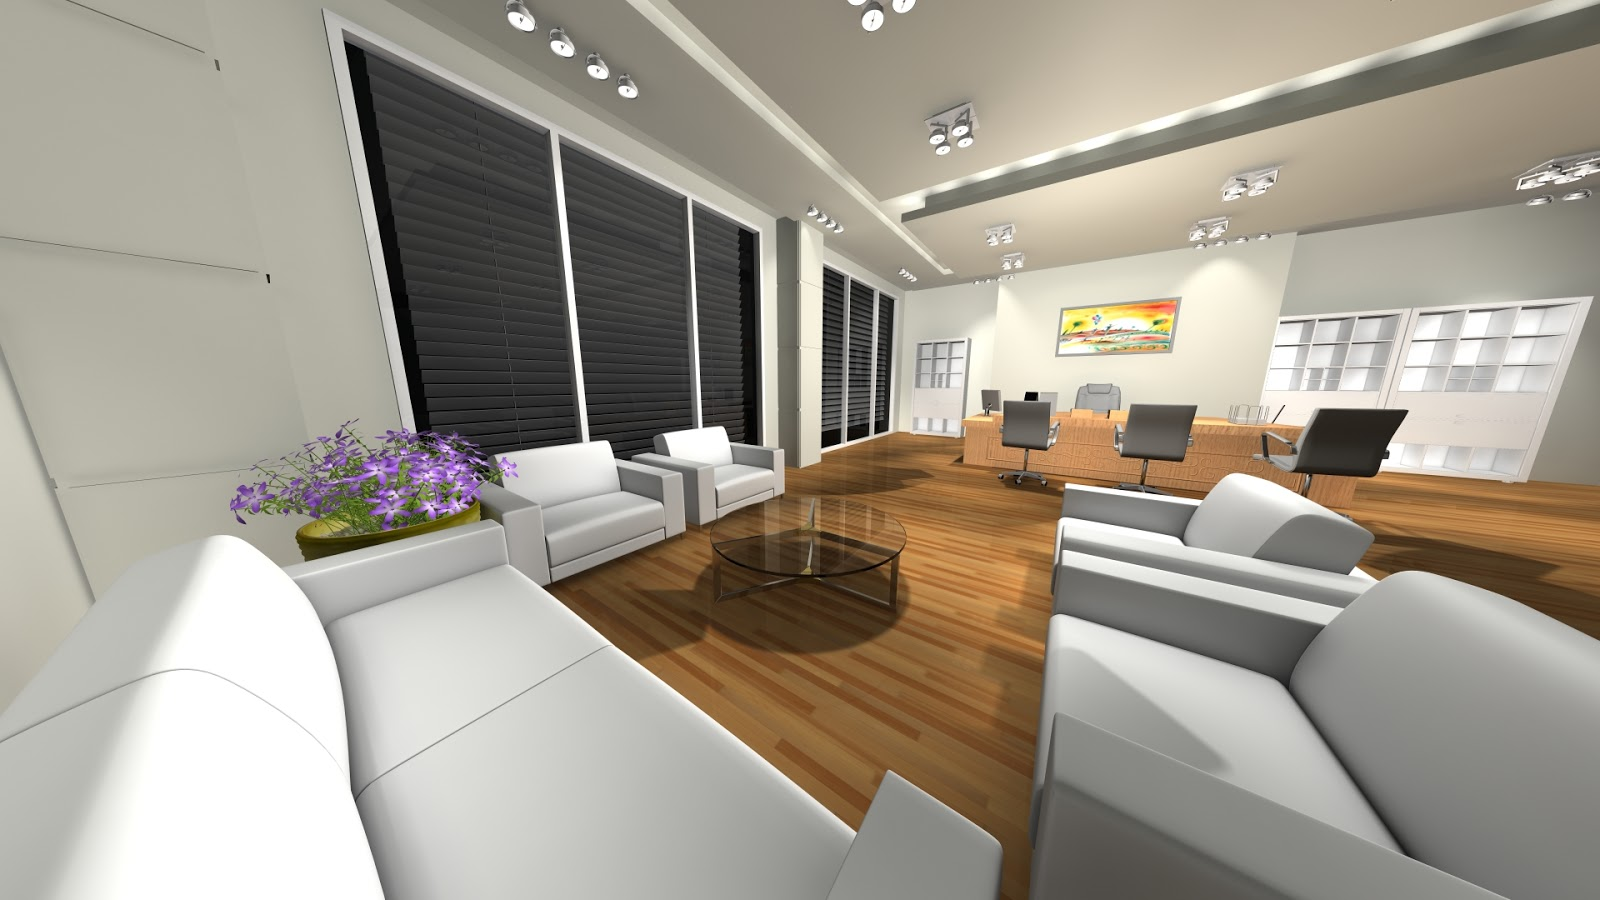 Sajid designer office room 3d interior design 3ds max for Designa interiors